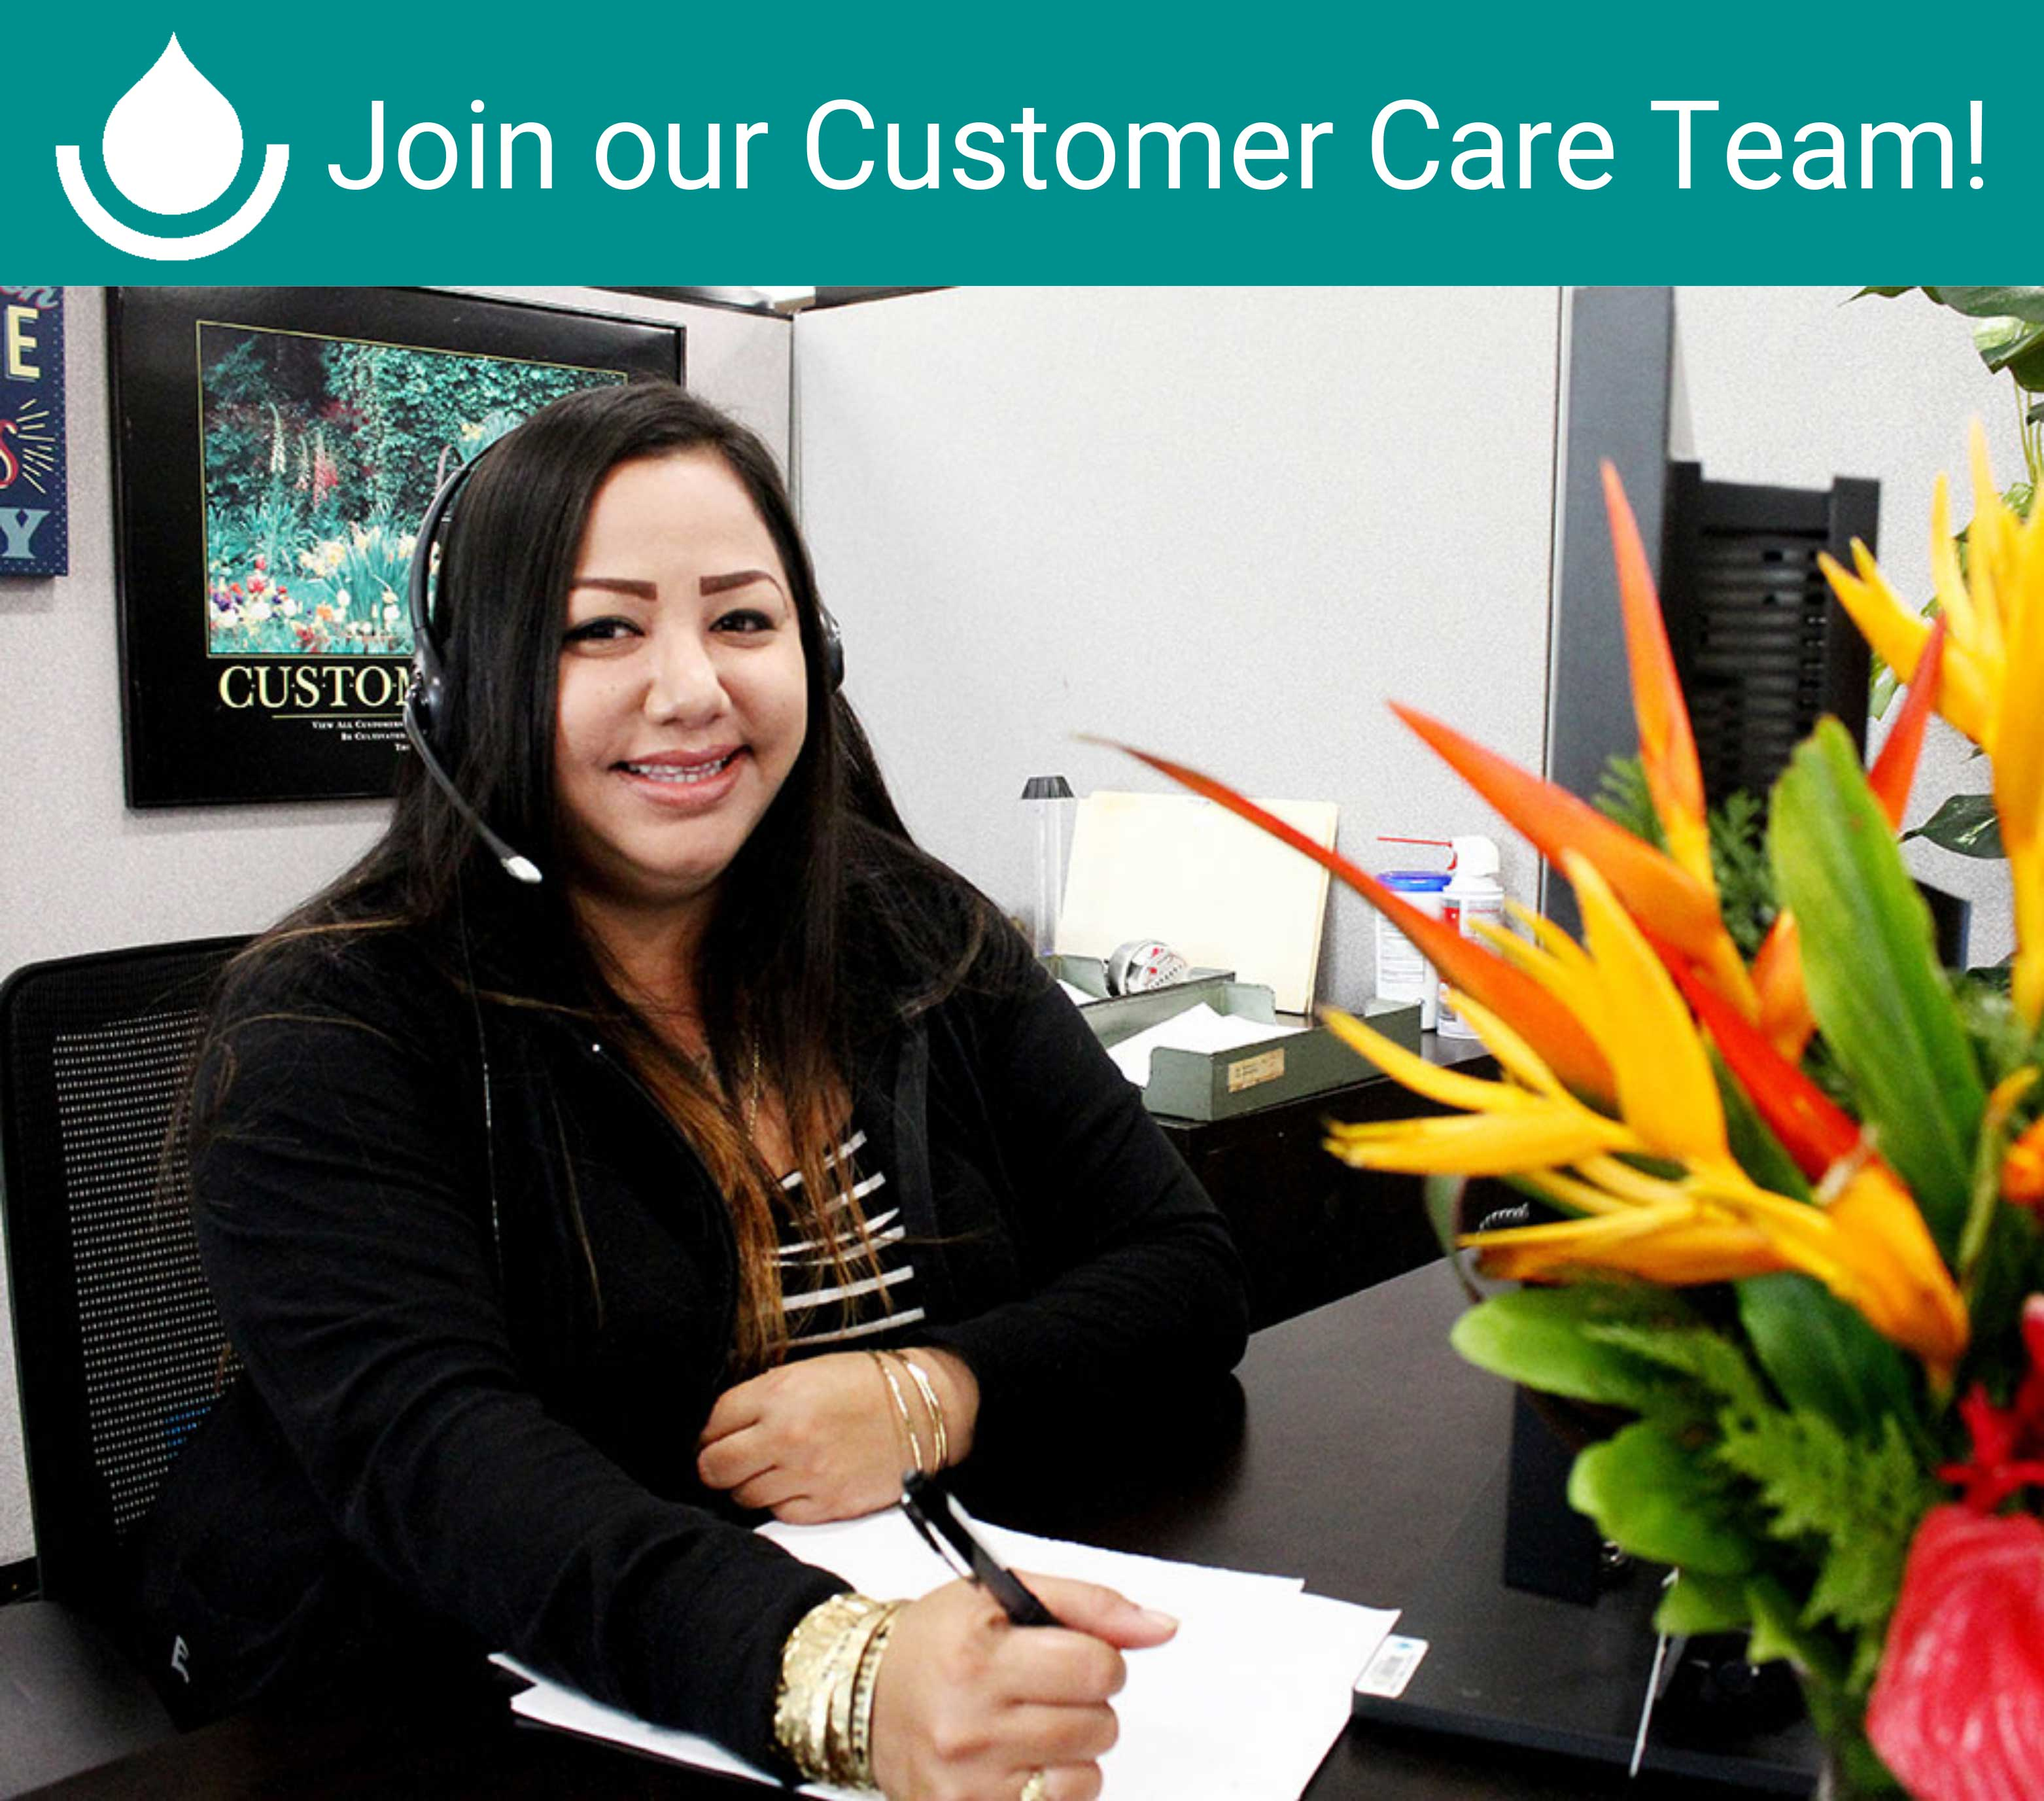 join our customer care team